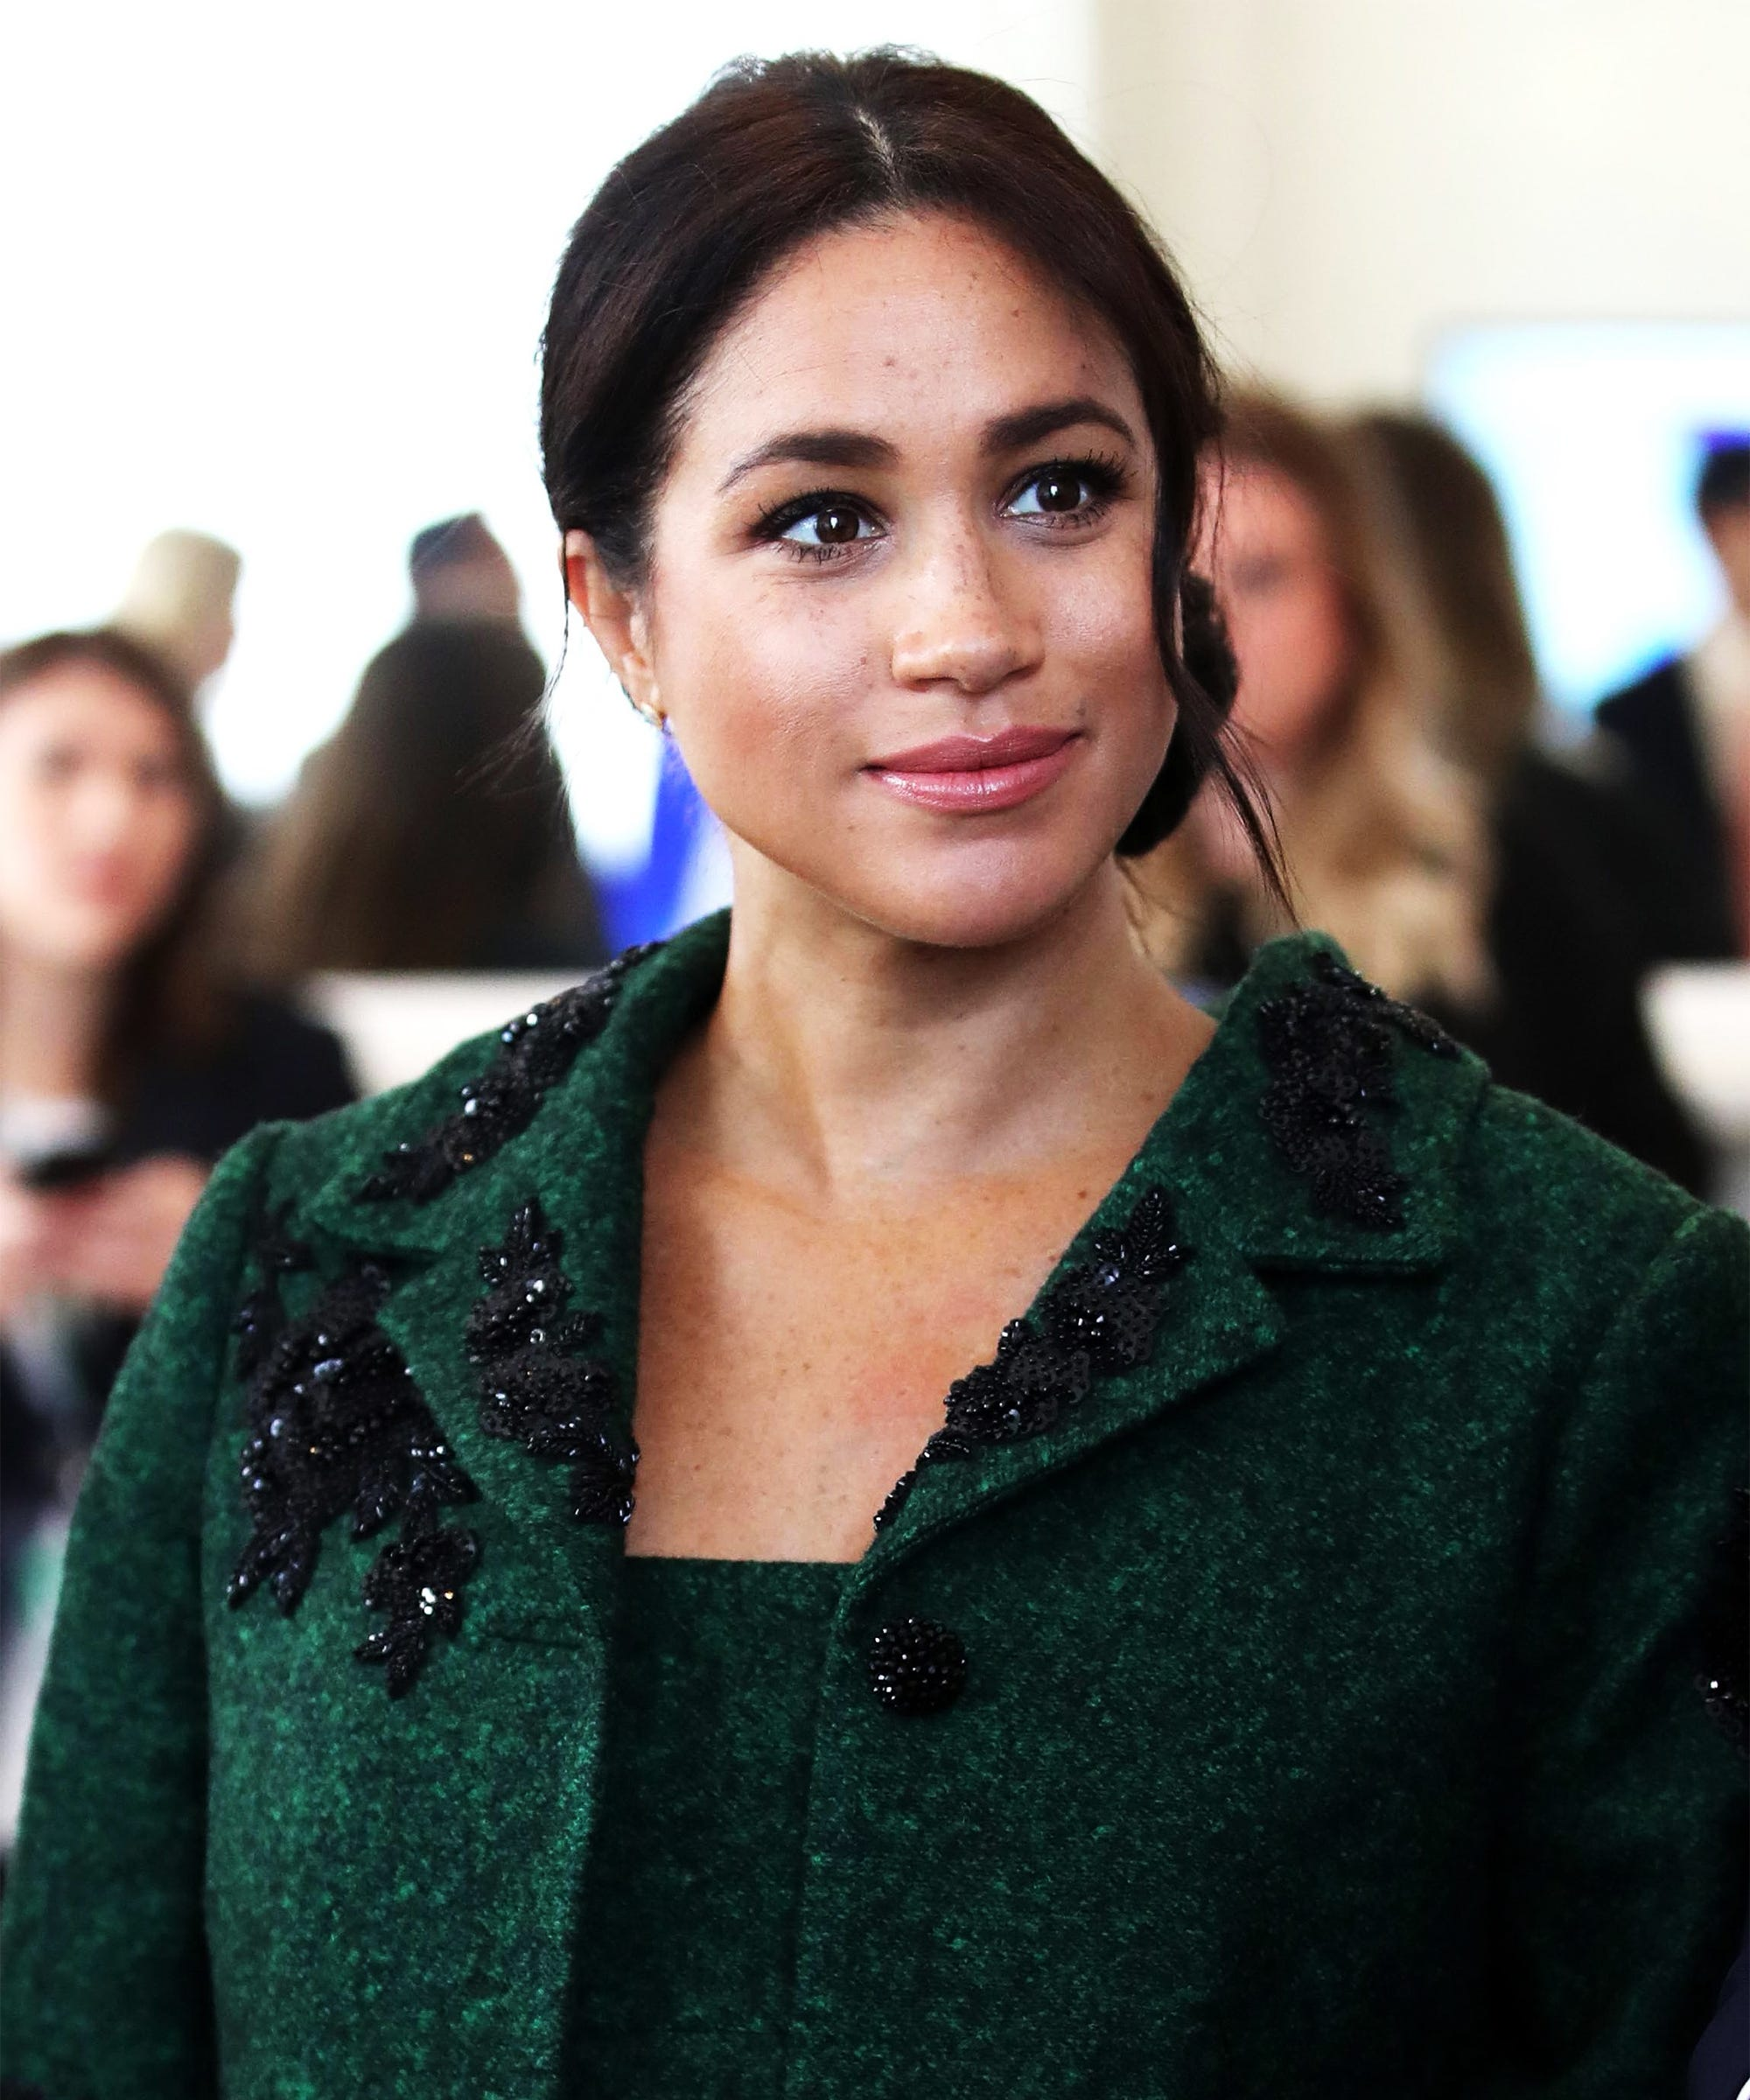 Flipboard: Meghan Markle Reportedly Wants A Home Birth At